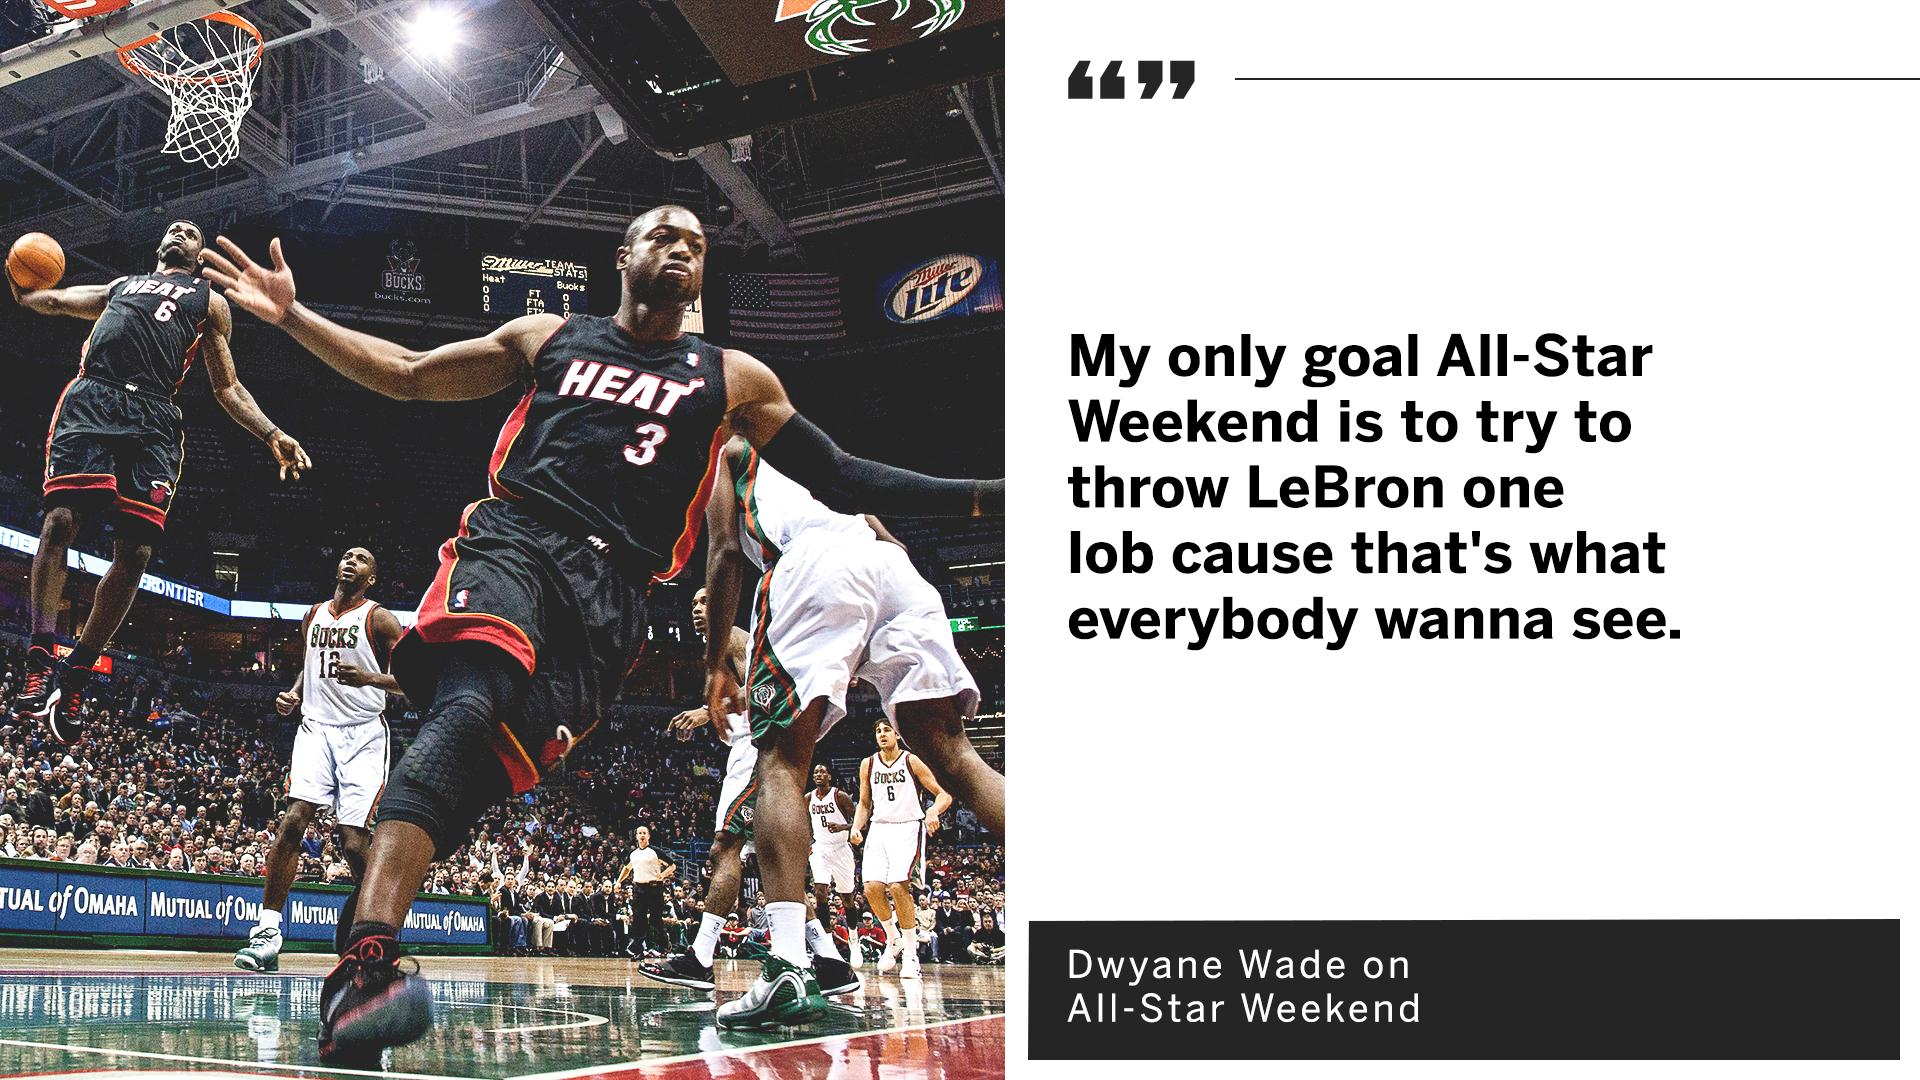 .@DwyaneWade and @KingJames together one last time �� https://t.co/34J3Ui80H3